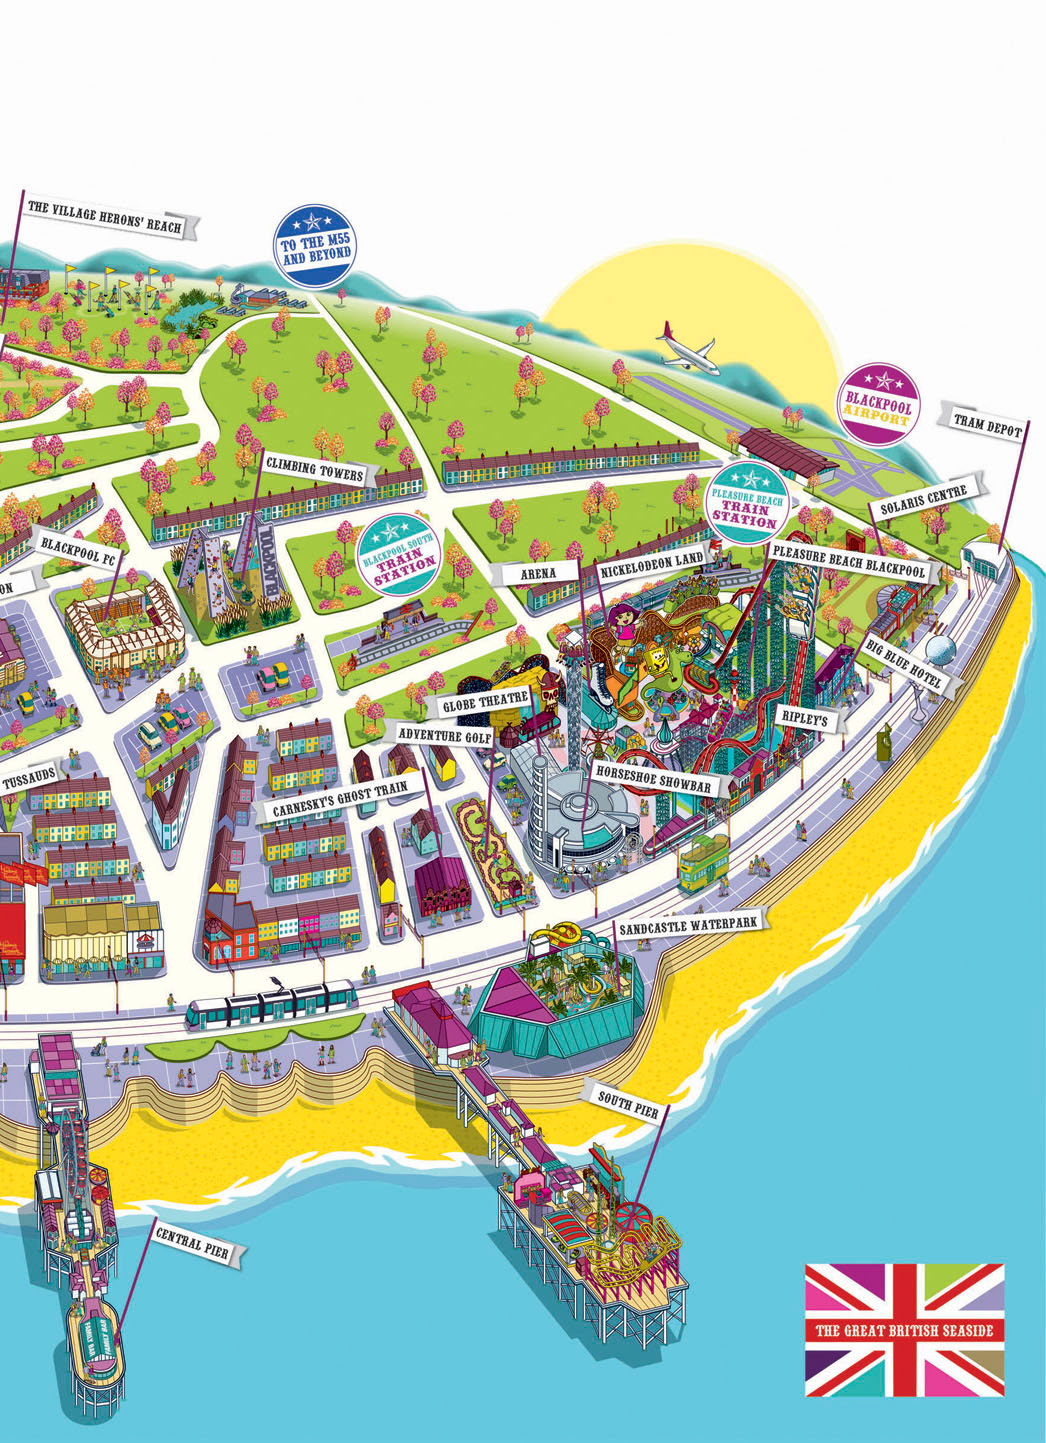 blackpool tourist map large blackpool maps for free download and  - rod hunt illustration studio illustration and map design attractionsinclude the blackpool